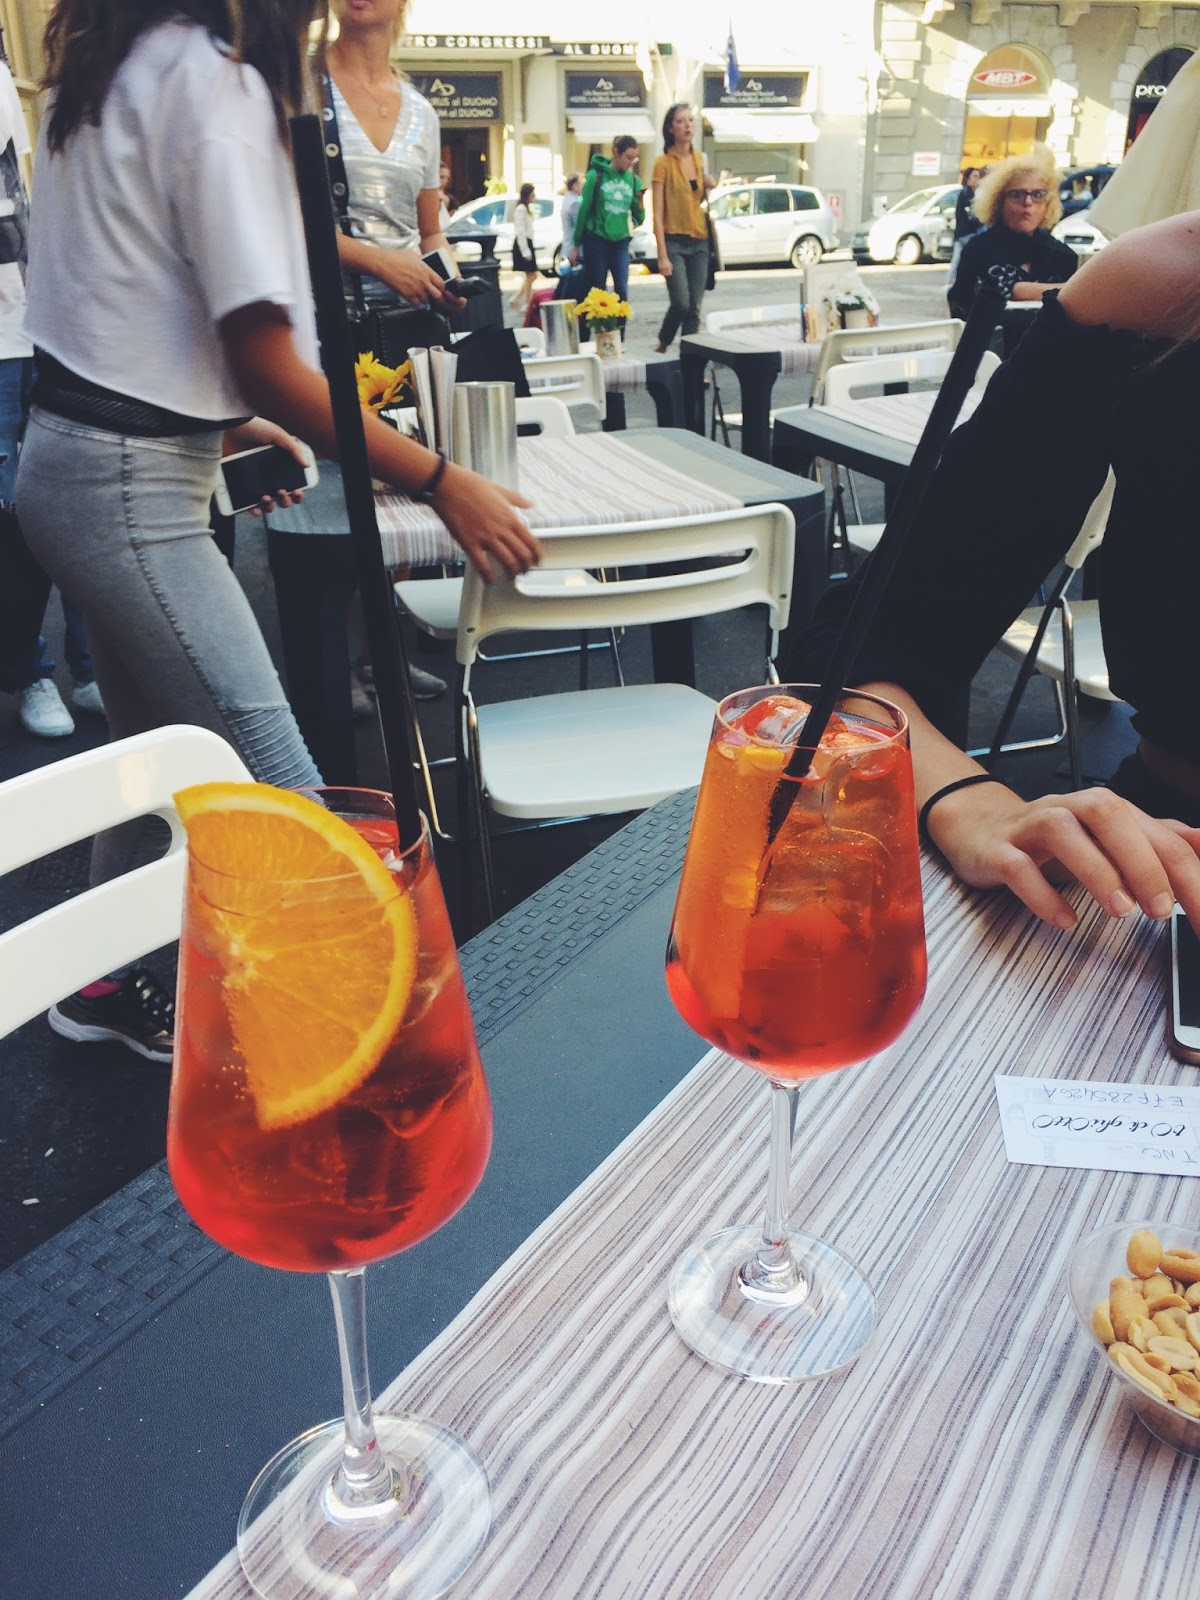 01947a4f1a63 For refreshing ourselves 2 glasses of Aperol Spritz ♥